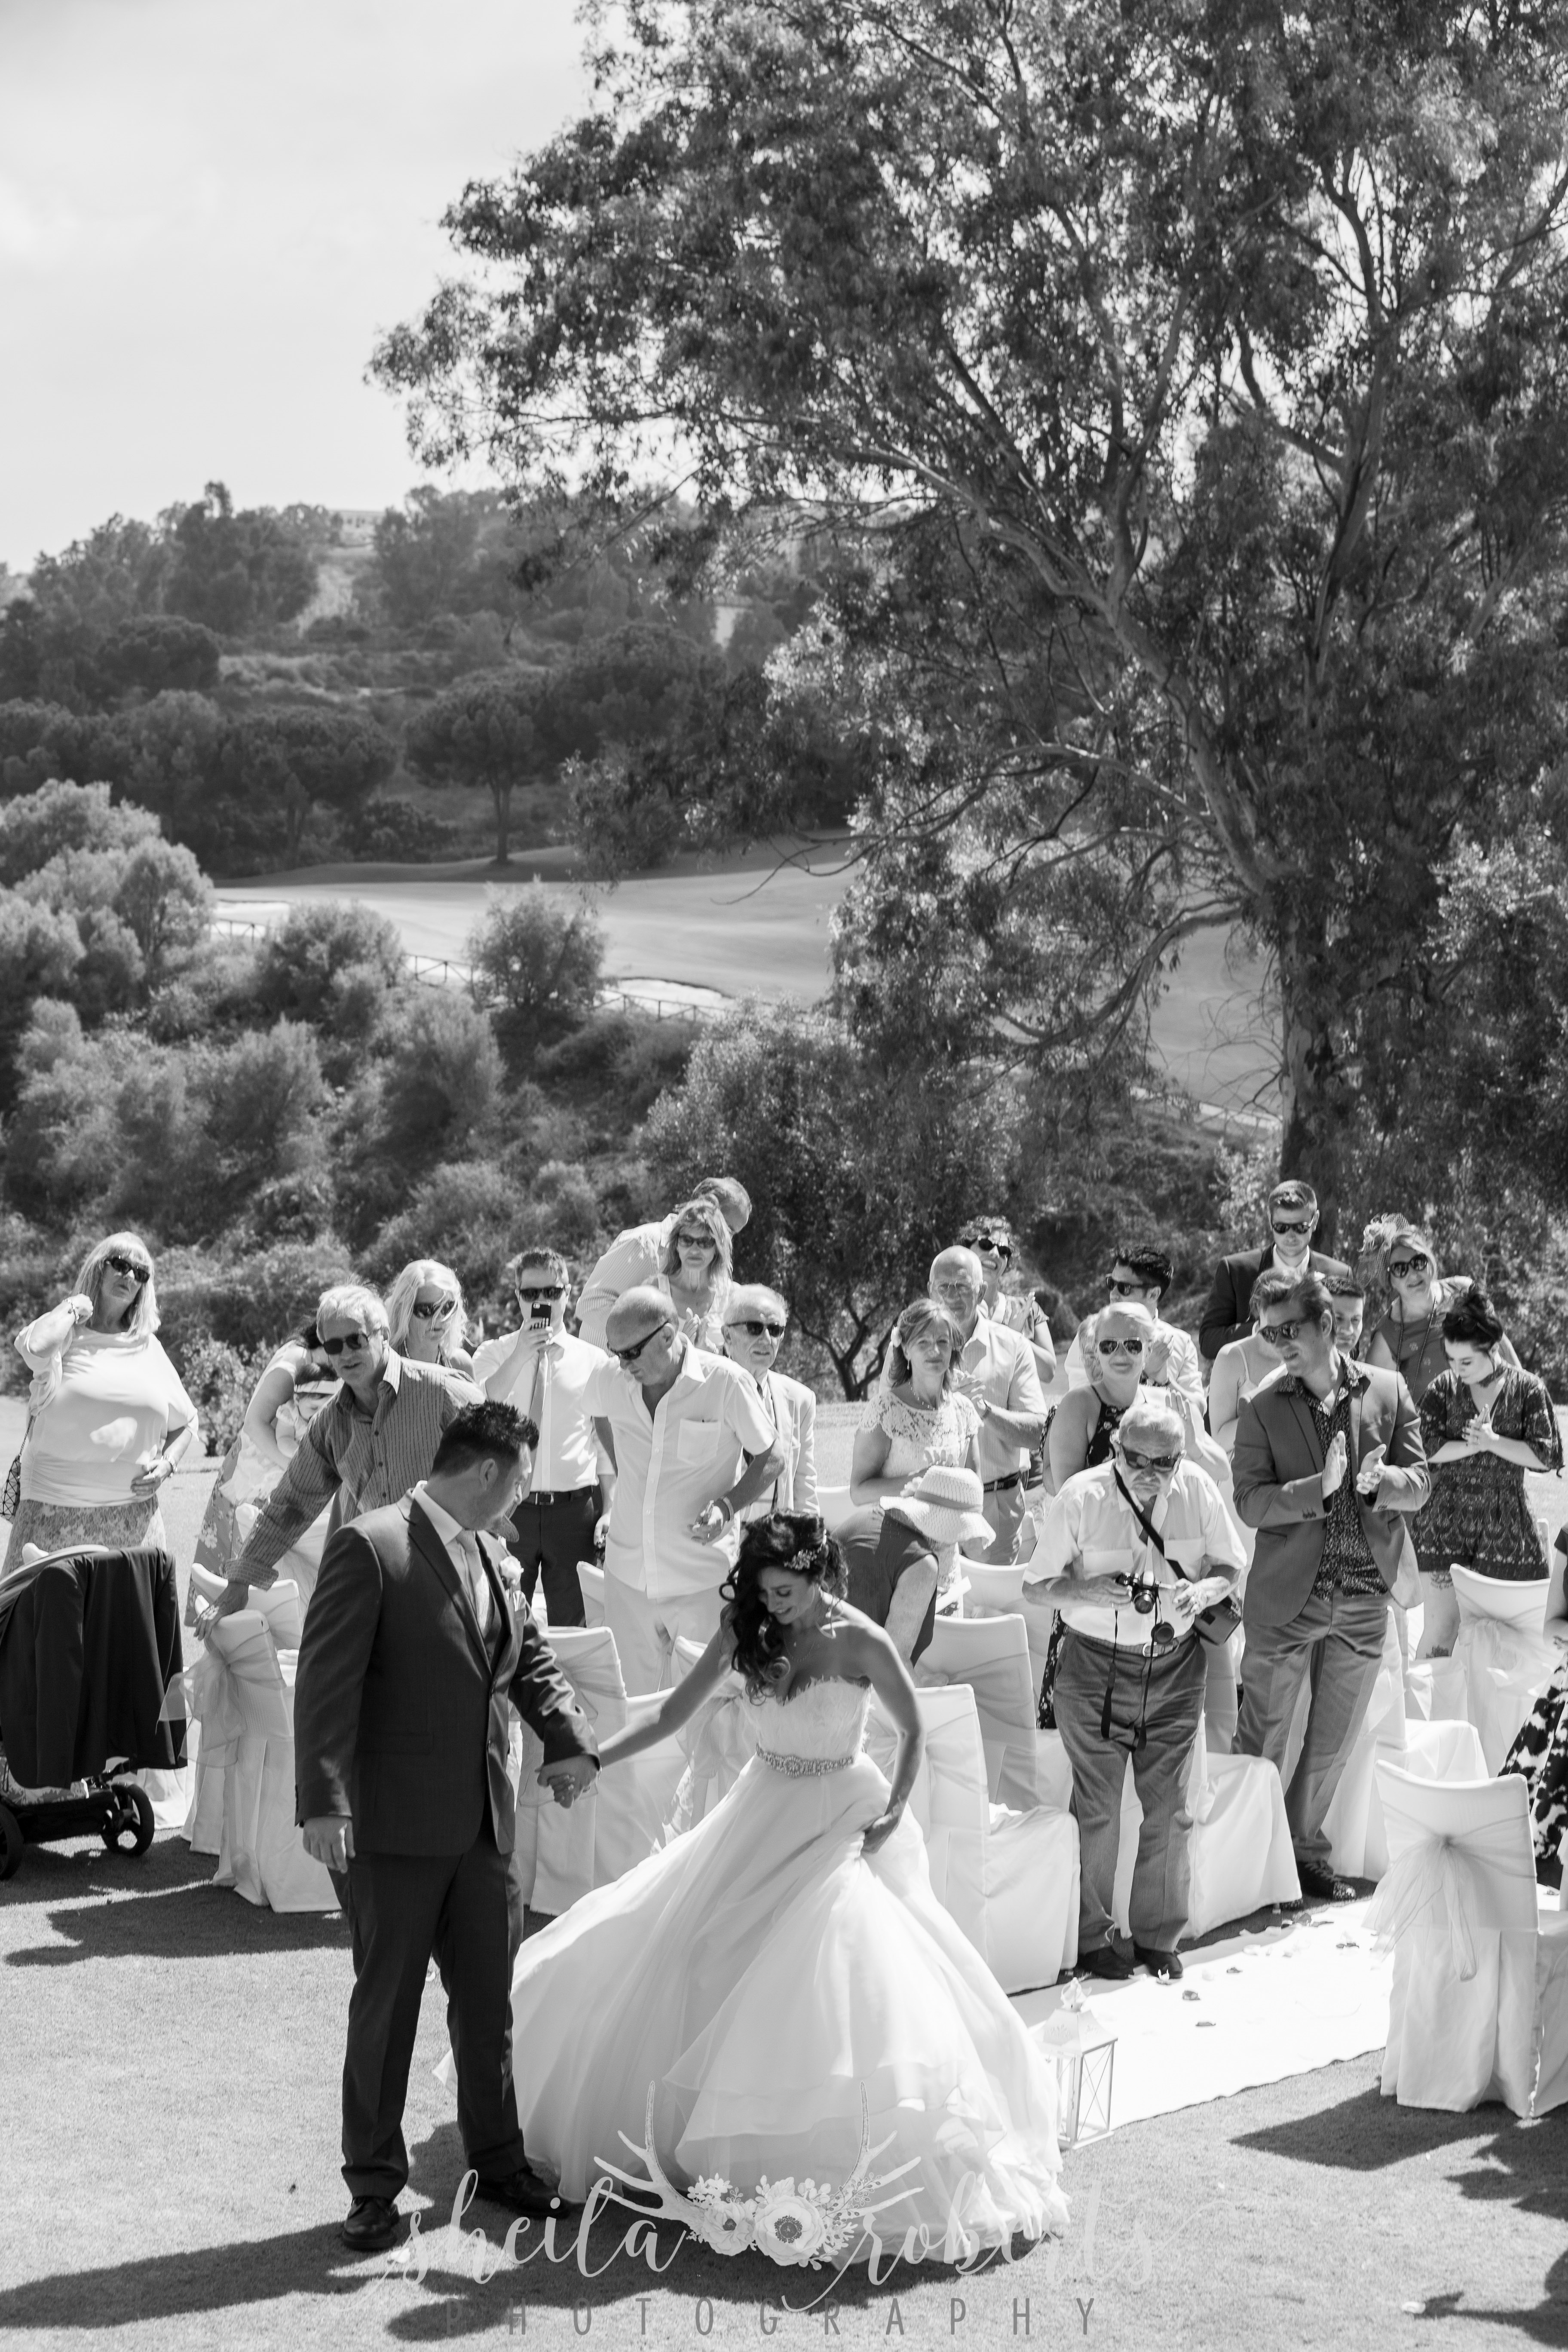 Black & White wedding guests